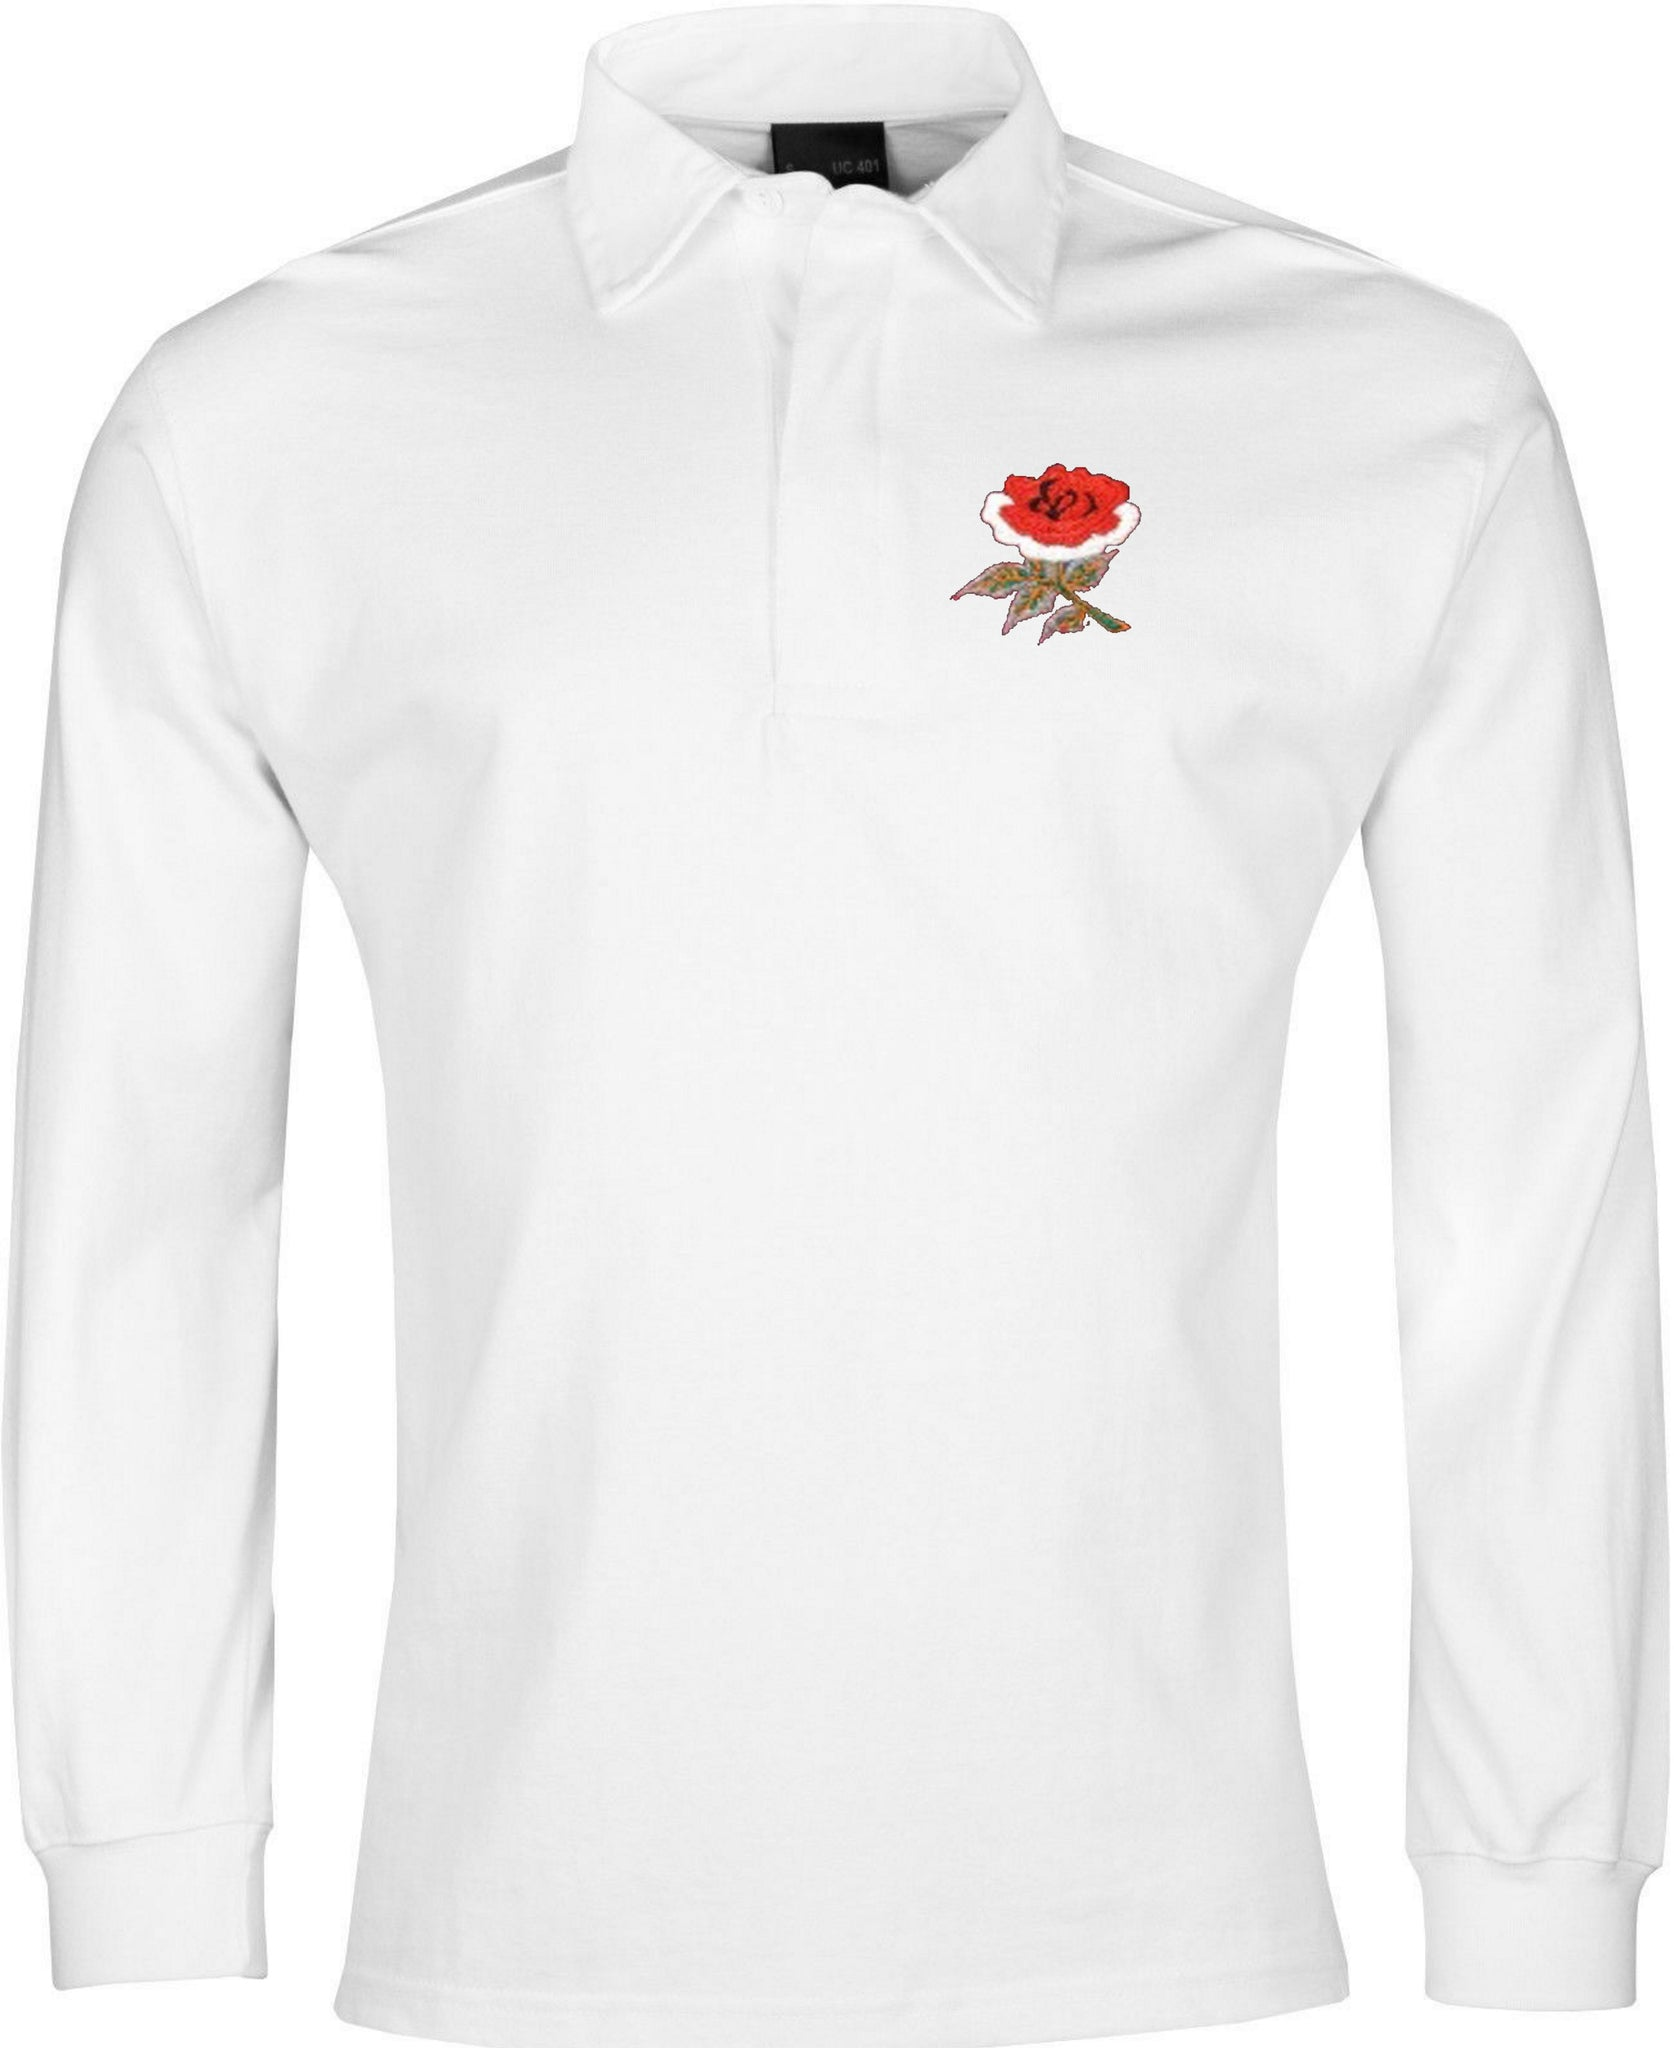 England Retro Rugby Shirt 1910 White Long-sleeved - Rugby Shirt